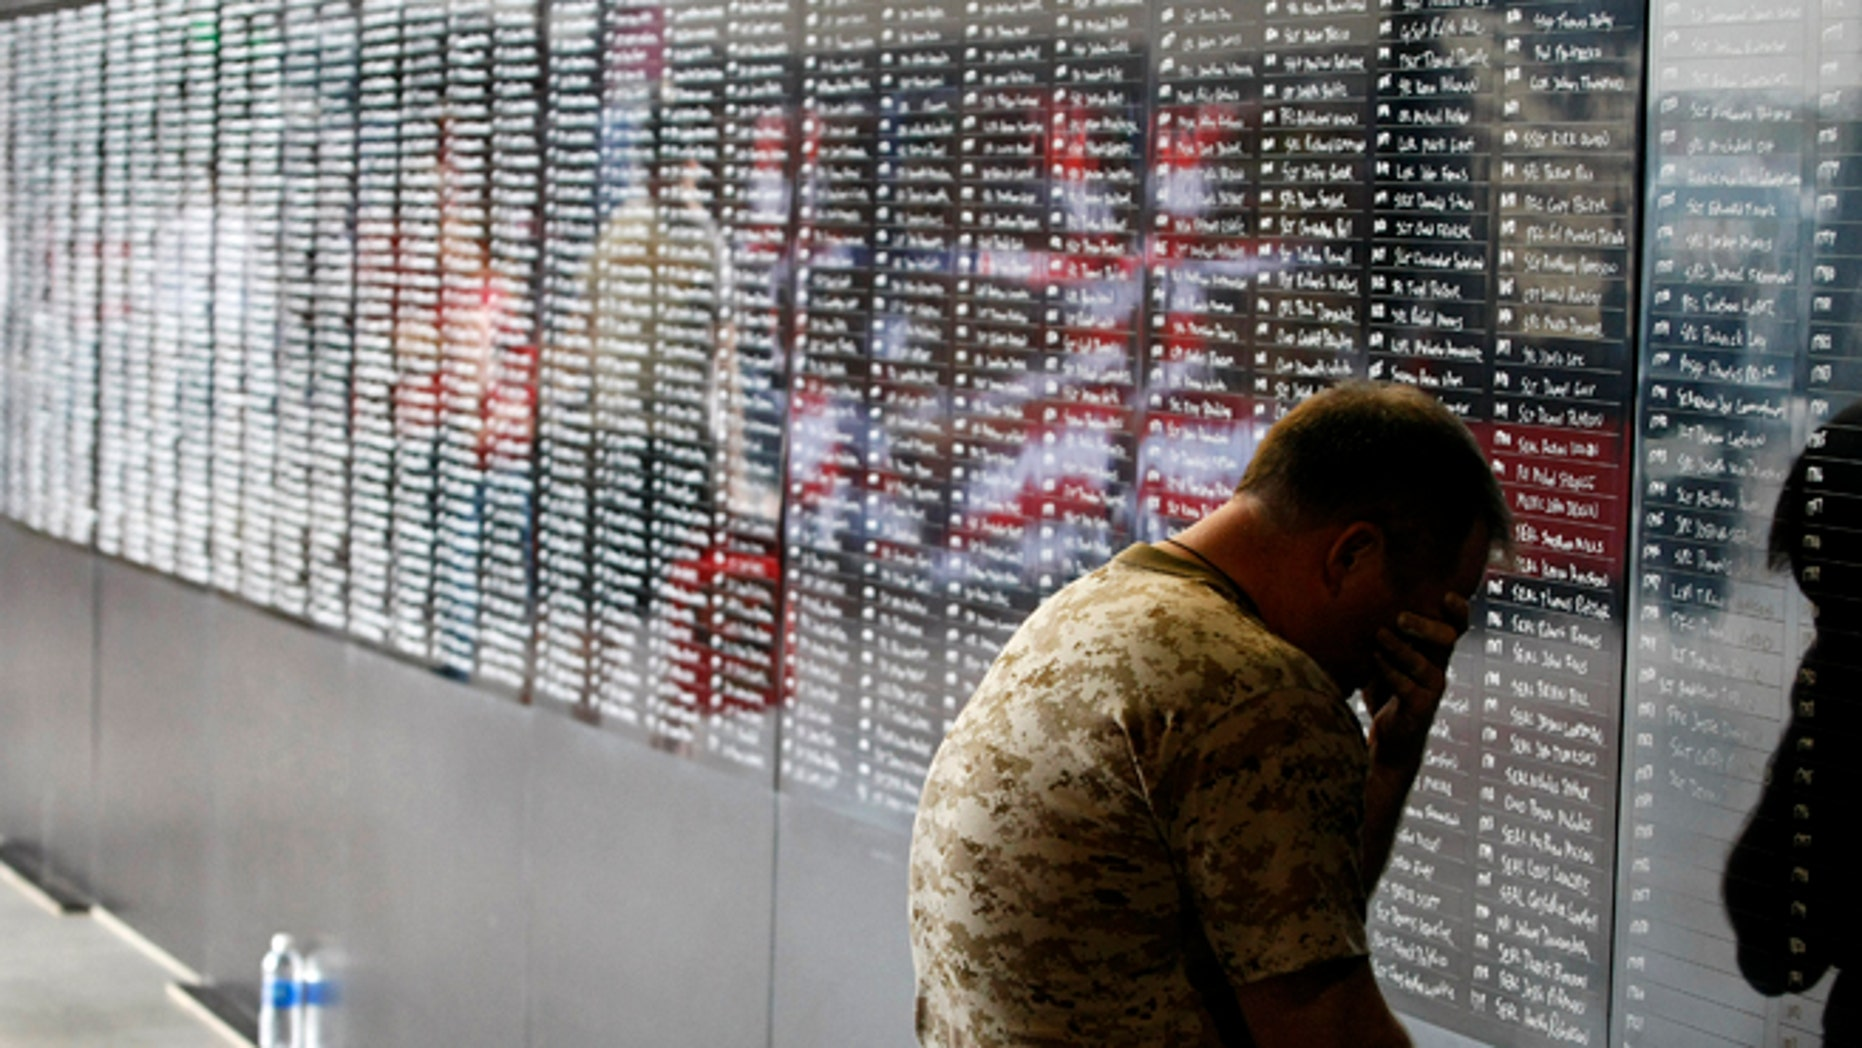 Two-time Memory Champion and U.S. Navy veteran Ron White pauses to reflect for a moment as he adds the names of over 2,000 fallen military personnel who served in the war in Afghanistan.